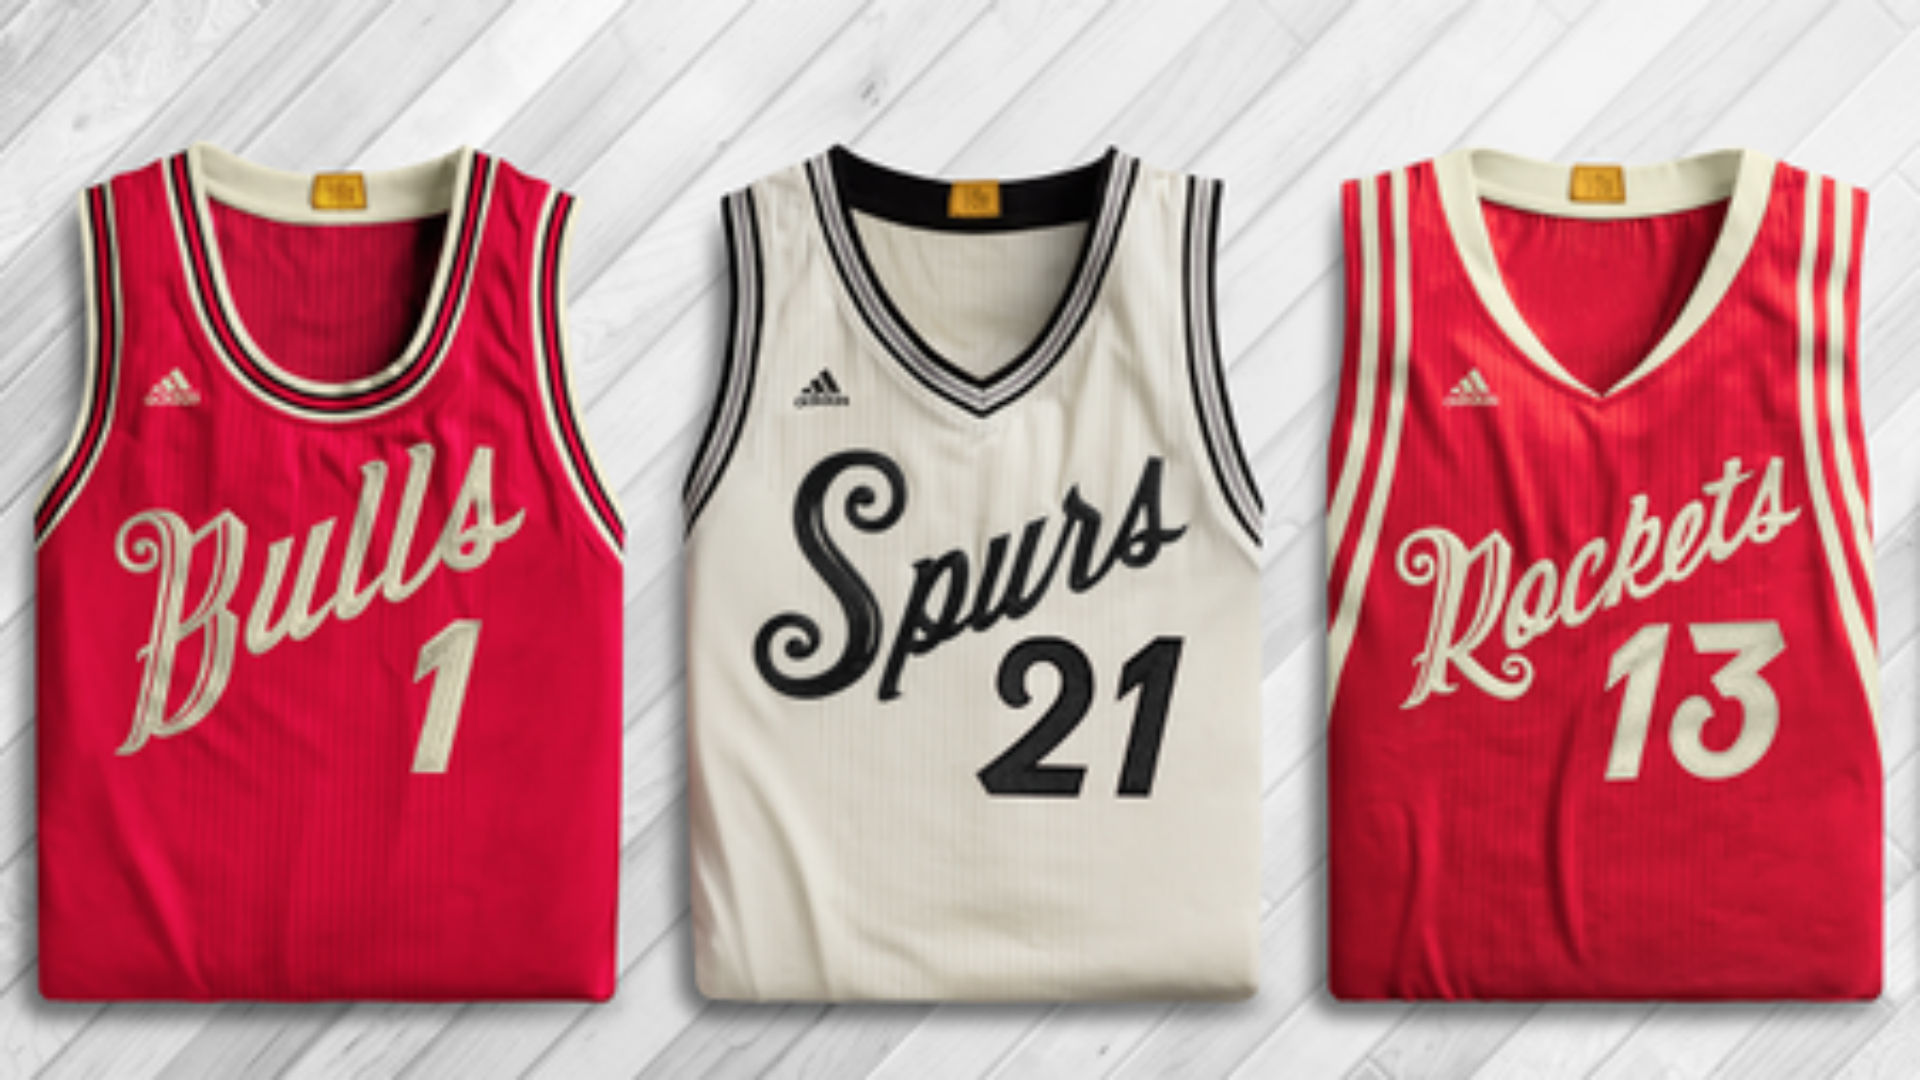 low priced 7c0cb 3cec7 Hey, the NBA Christmas jerseys for 2015 aren't bad ...